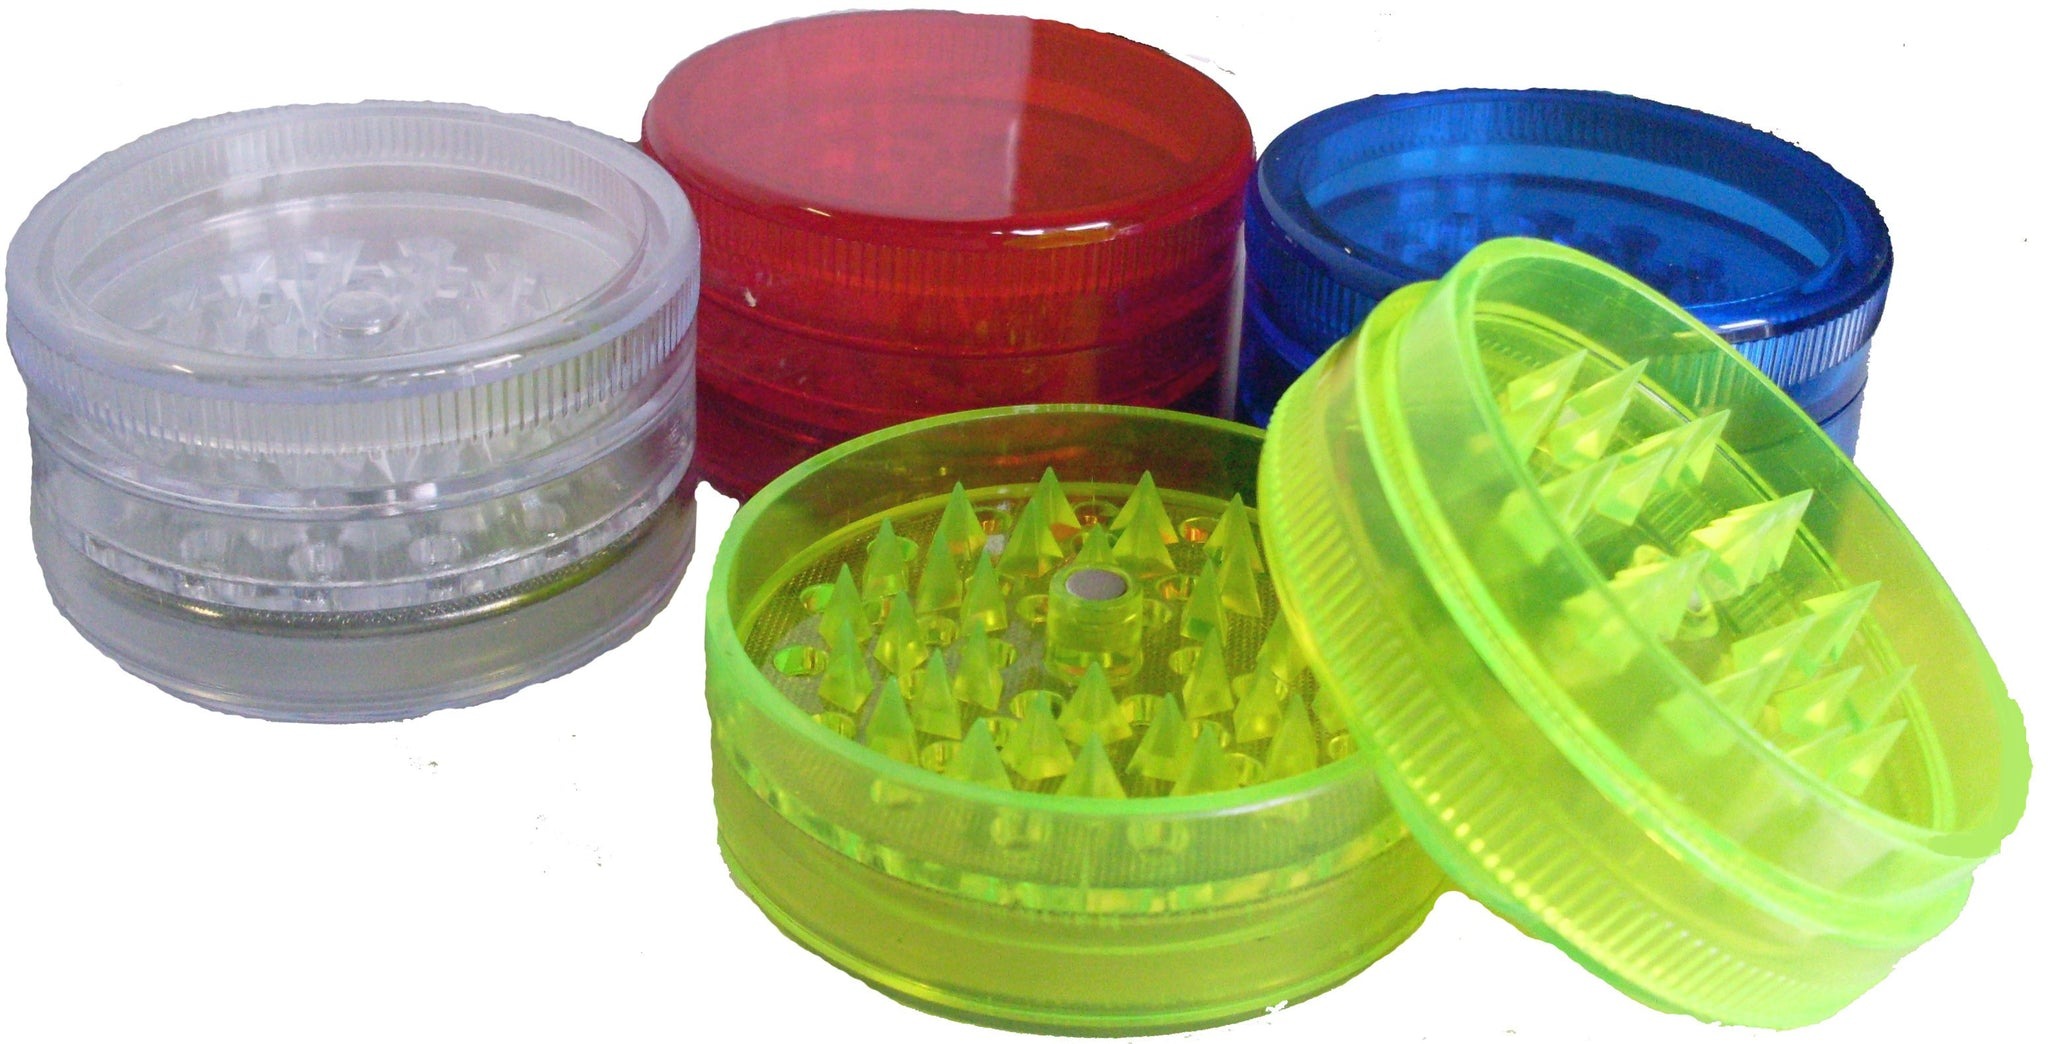 DISCONTINUED Plastic Herb Grinder/Sifter 60mm 3pc